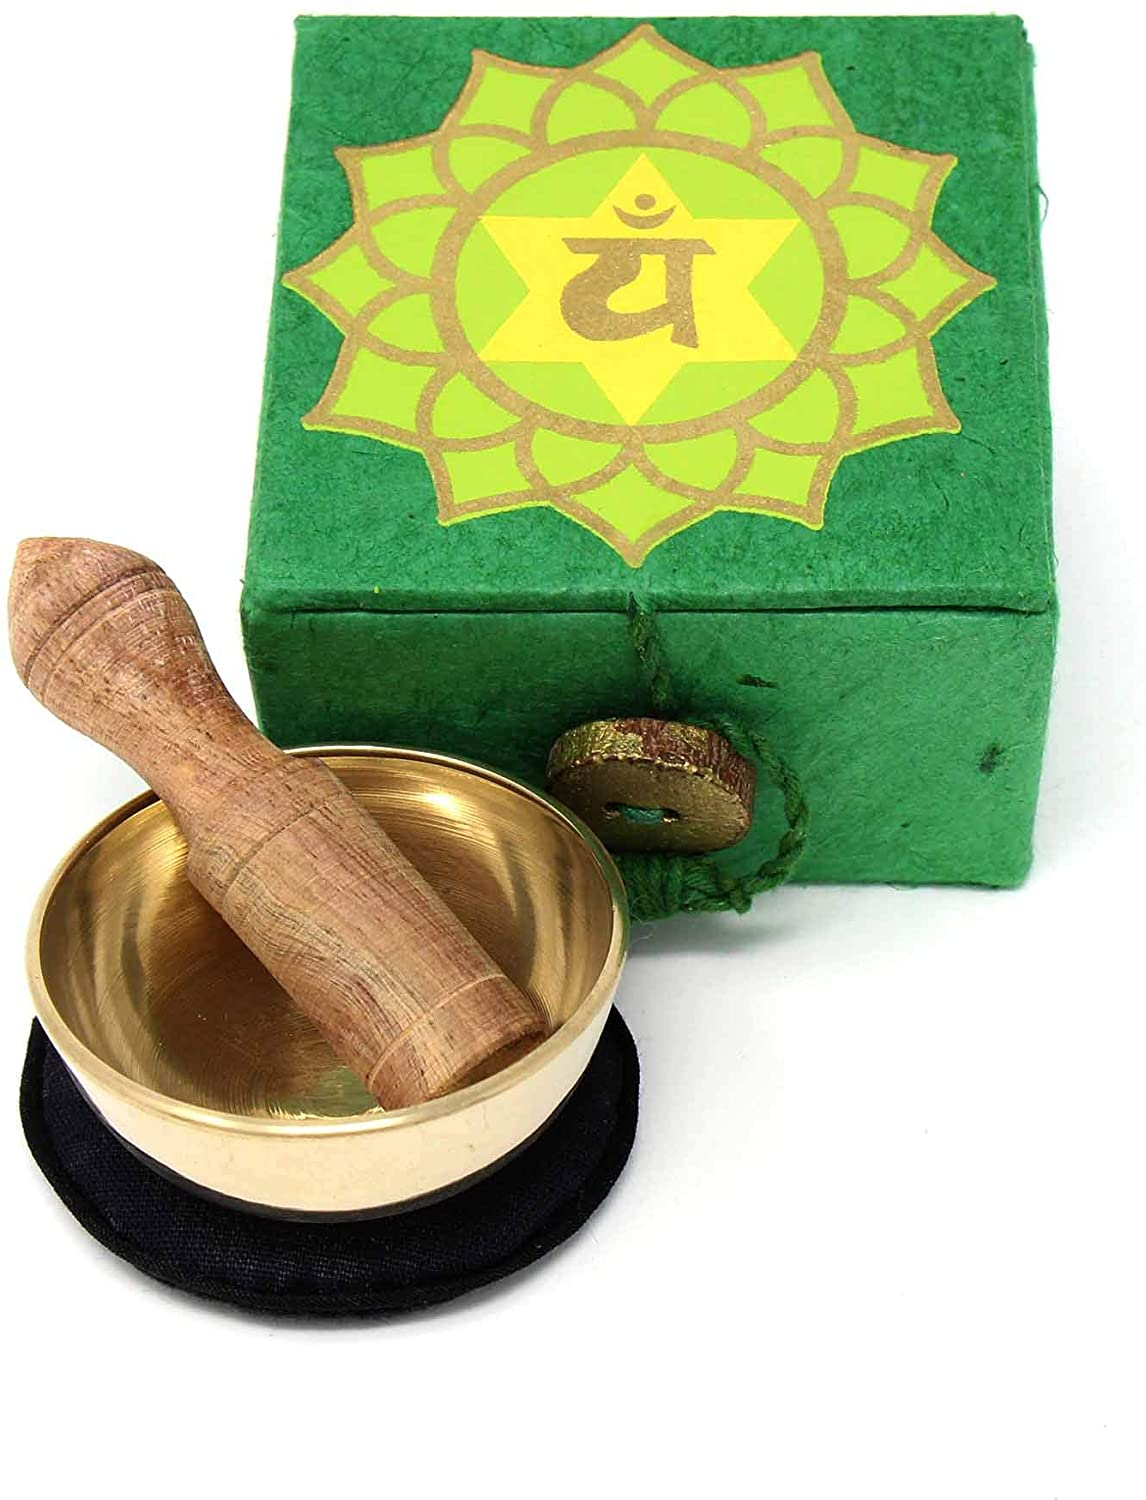 Heart chakra mini meditation singing bowl